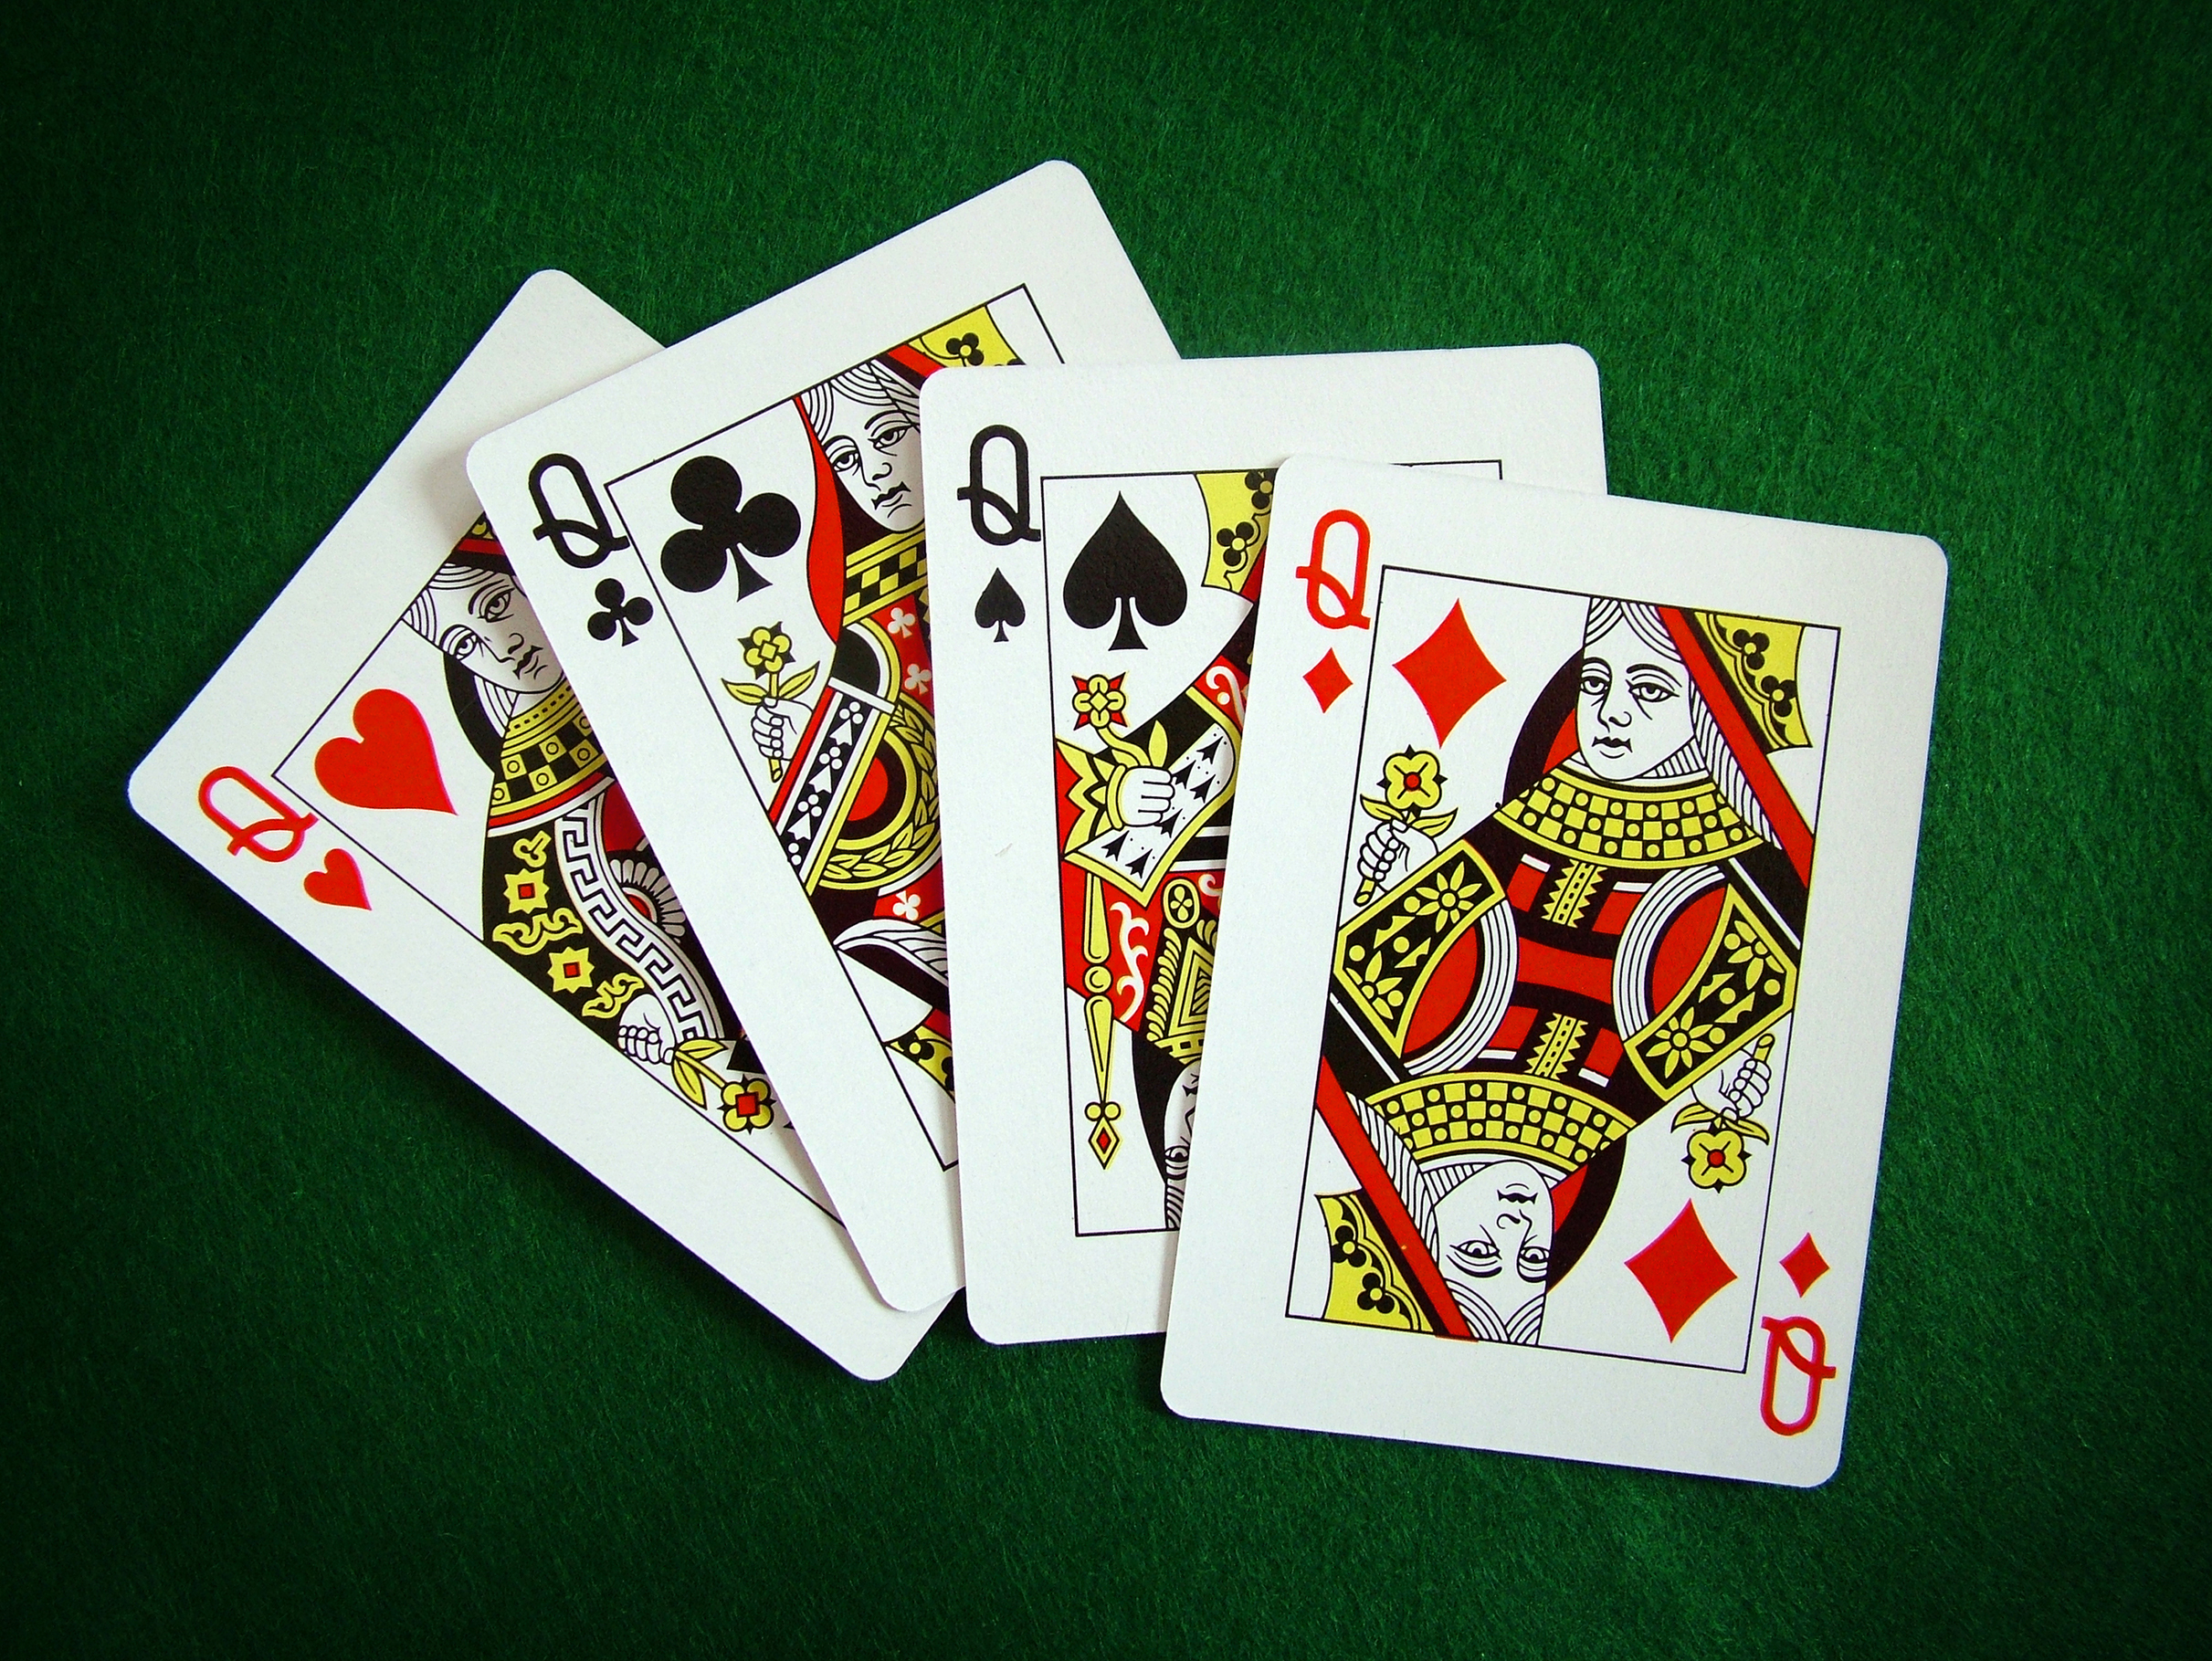 poker players folding quad queens